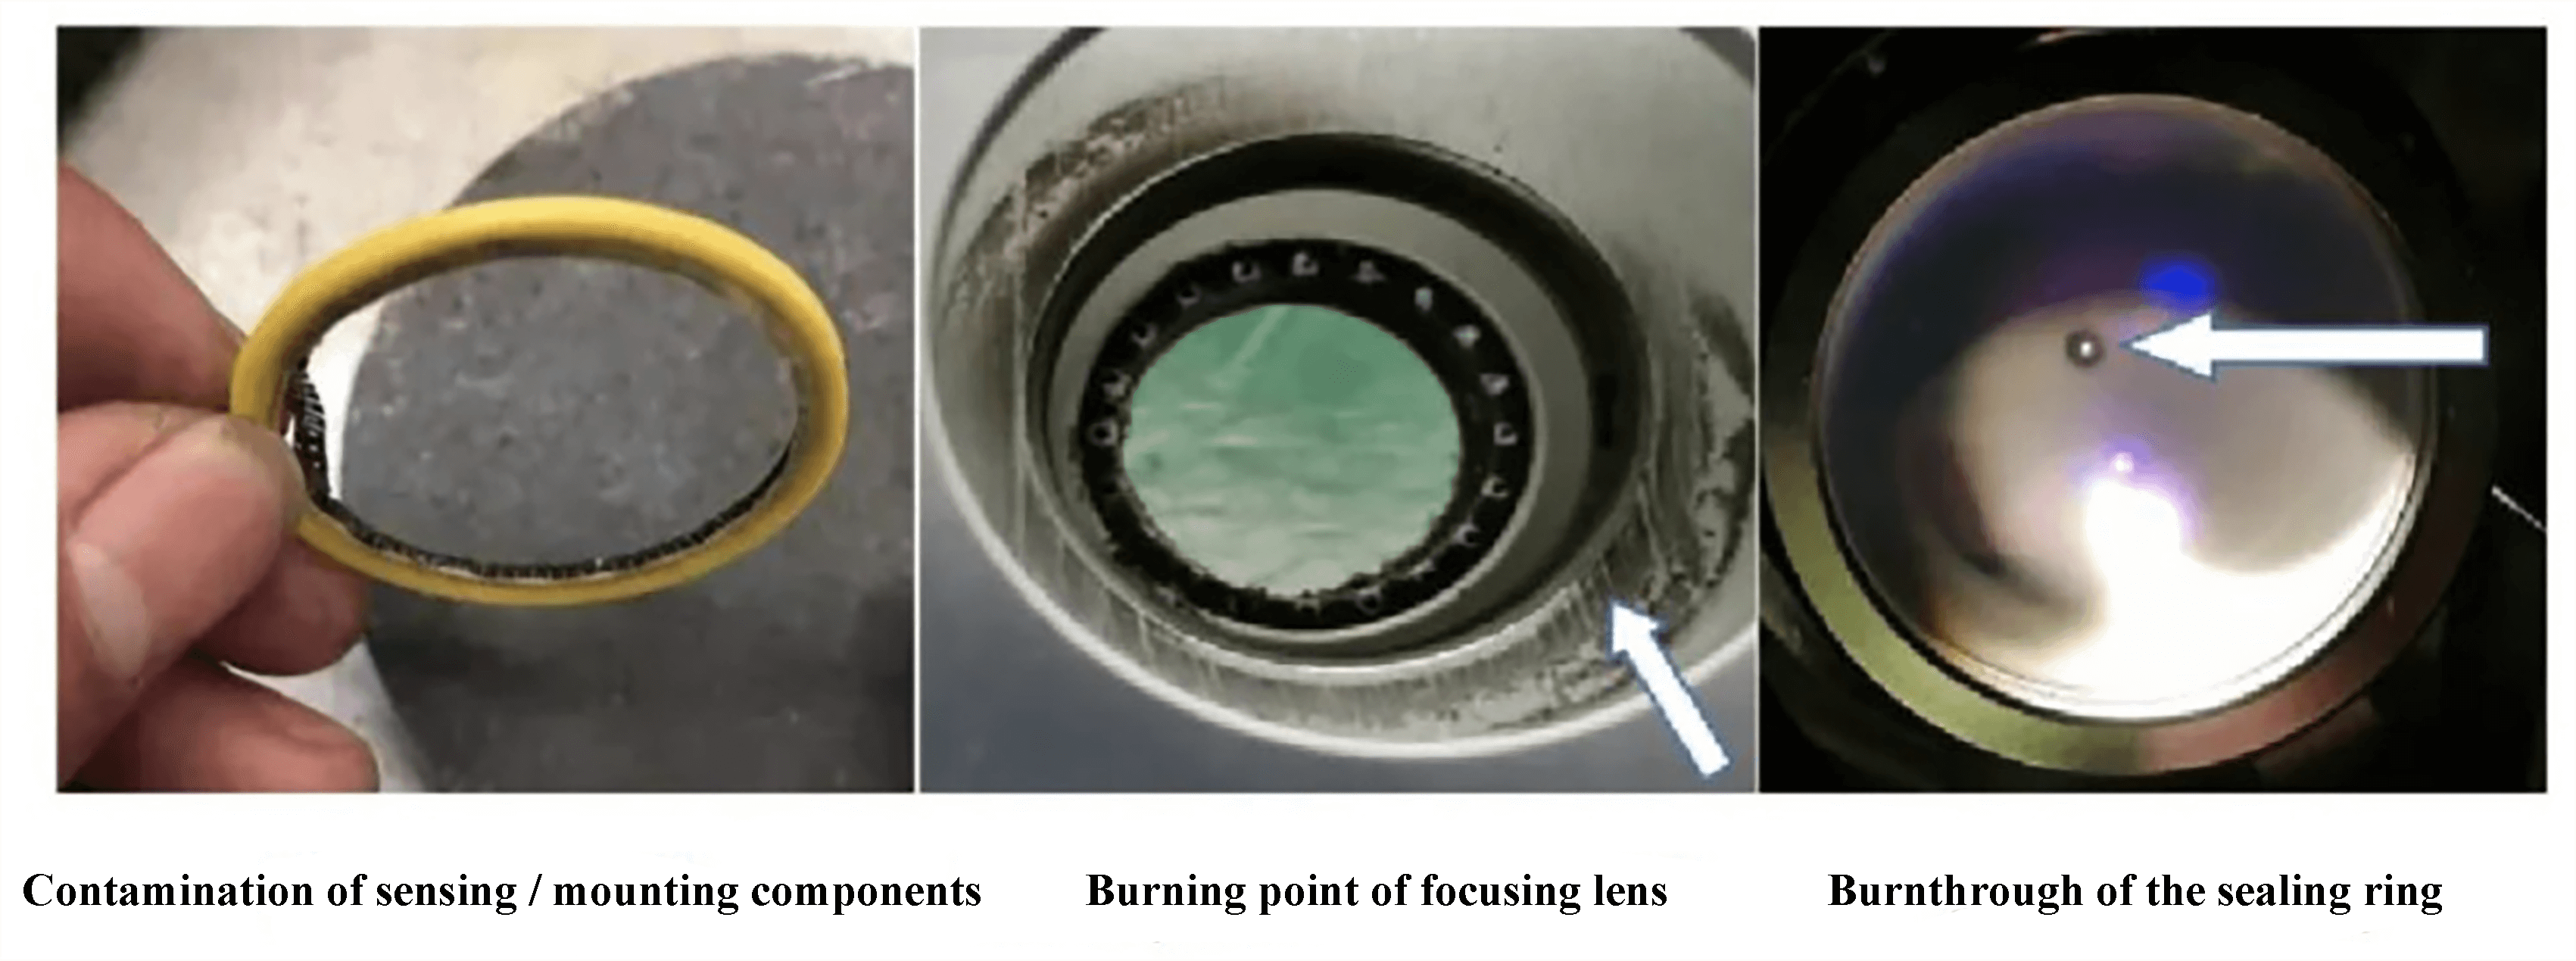 Fig. 4 Burning point of focusing lens